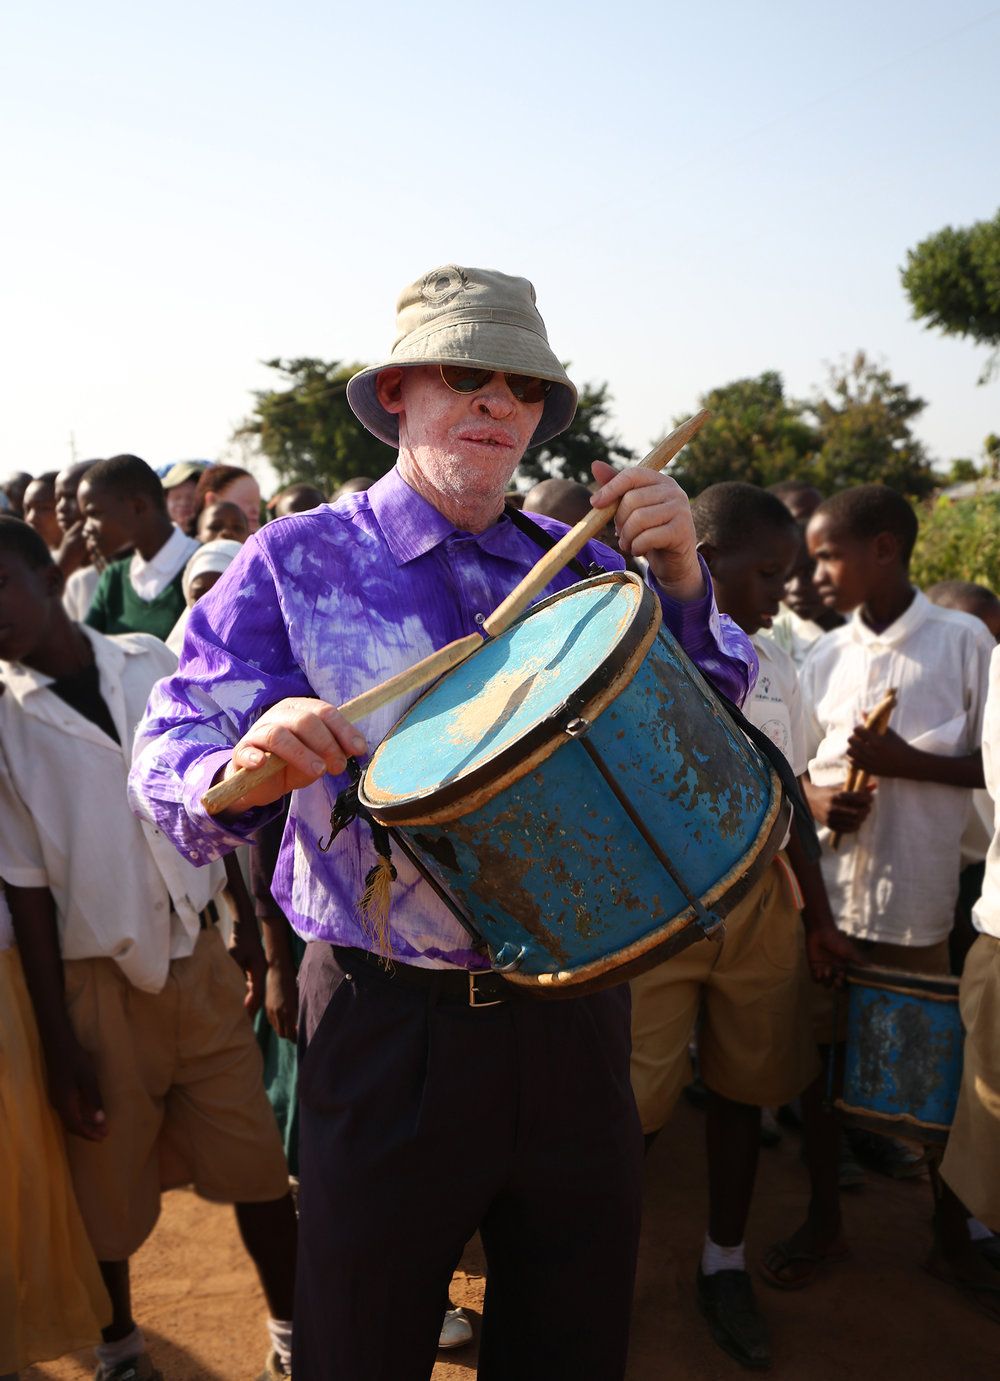 International Albinism Awareness Day. 13th June. People come together to march the streets and raise awareness for their plight. School children from the community sing in support.